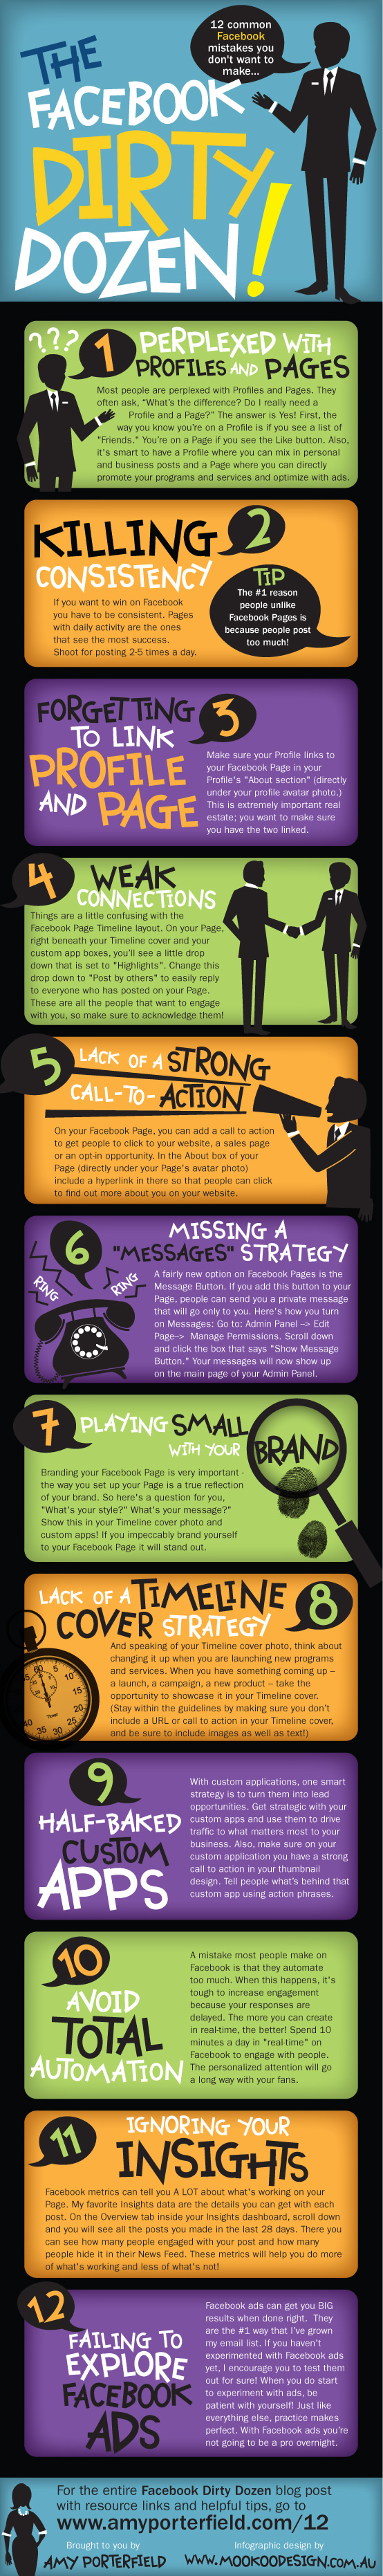 12 Facebook page mistakes-infographic